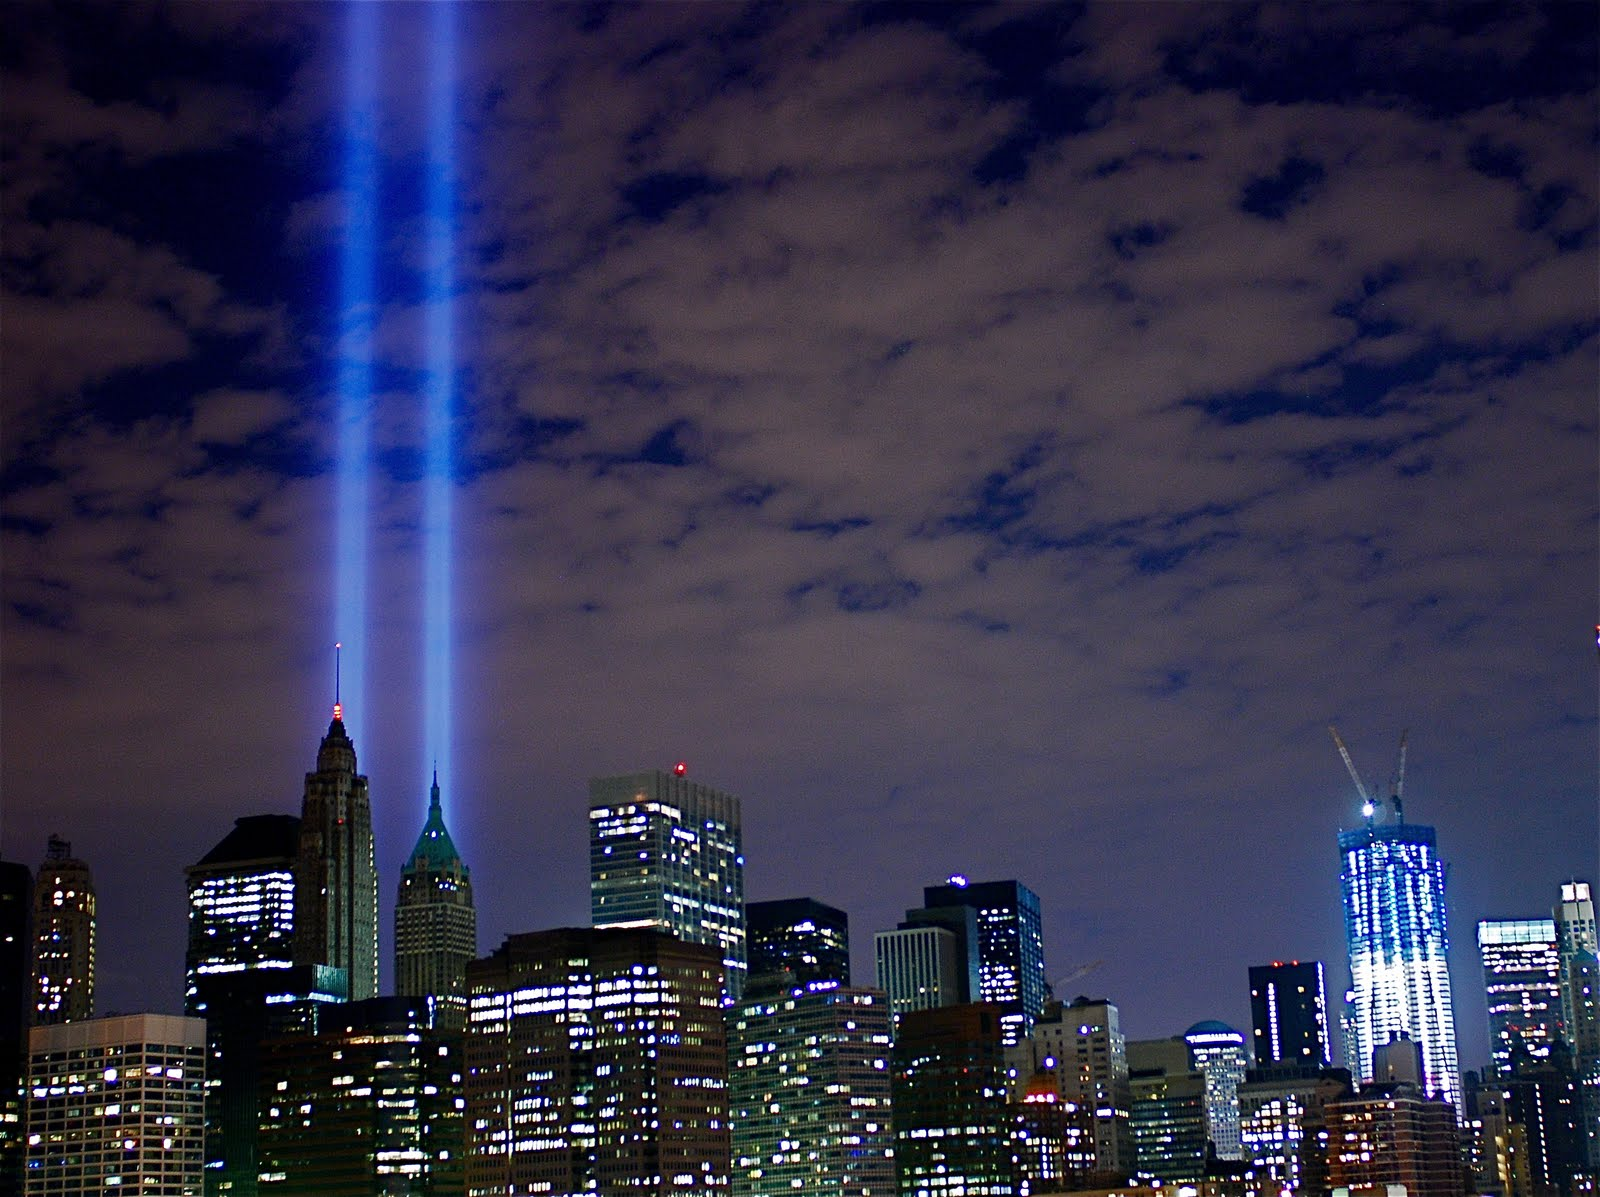 9/11 lights new york